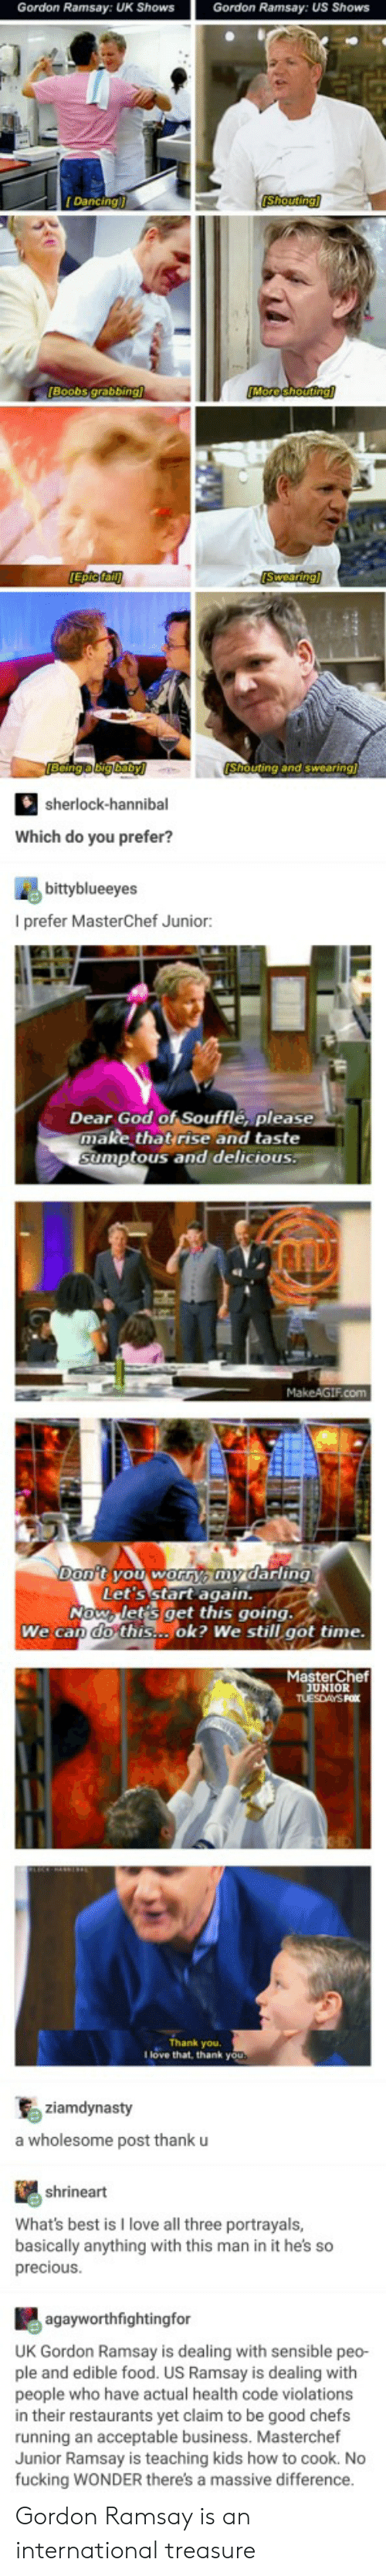 We Can Do This: Gordon Ramsay: UK Shows  Gordon Ramsay: US Shows  Dancing  Shouting  Boobs grabbir  uting and swearing  sherlock-hannibal  Which do you prefer?  bittyblueeyes  I prefer MasterChef Junior:  Dear God of Soufflé, please  make thatrise and taste  umptous and delicious.  Let's start agaiD.  Now lets get this going.  We can do this...ok? We still got time  MasterChef  UNIOR  Thank you.  I love that, thank you  ziamdynasty  a wholesome post thank u  shrineart  What's best is I love all three portrayals,  basically anything with this man in it he's so  preciousS  agayworthfightingfor  UK Gordon Ramsay is dealing with sensible peo-  ple and edible food. US Ramsay is dealing with  people who have actual health code violations  in their restaurants yet claim to be good chefs  running an acceptable business. Masterchef  Junior Ramsay is teaching kids how to cook. No  fucking WONDER there's a massive difference Gordon Ramsay is an international treasure